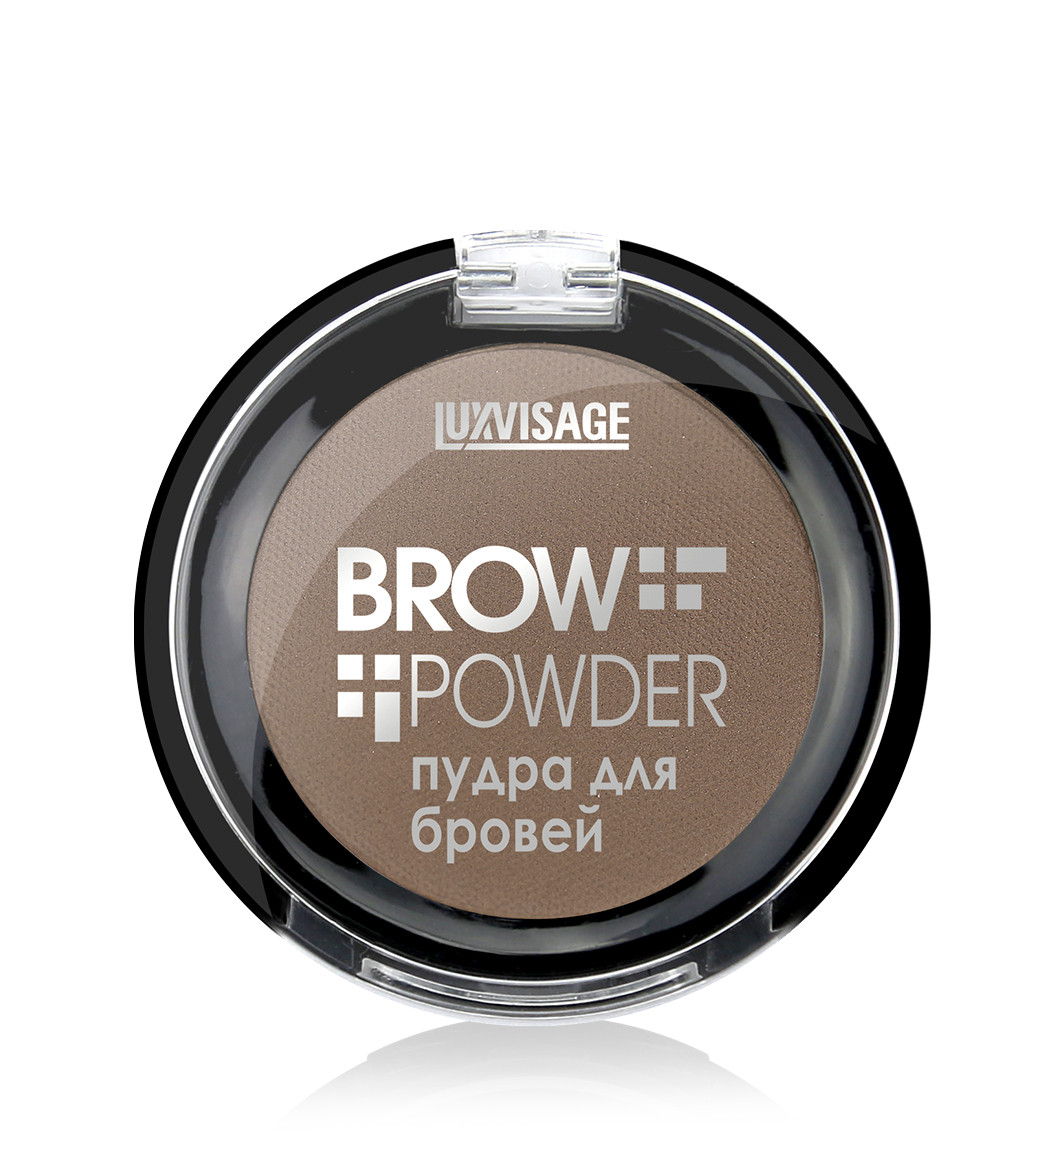 Пудра для бровей Luxvisage Brow powder тон Light Taupe